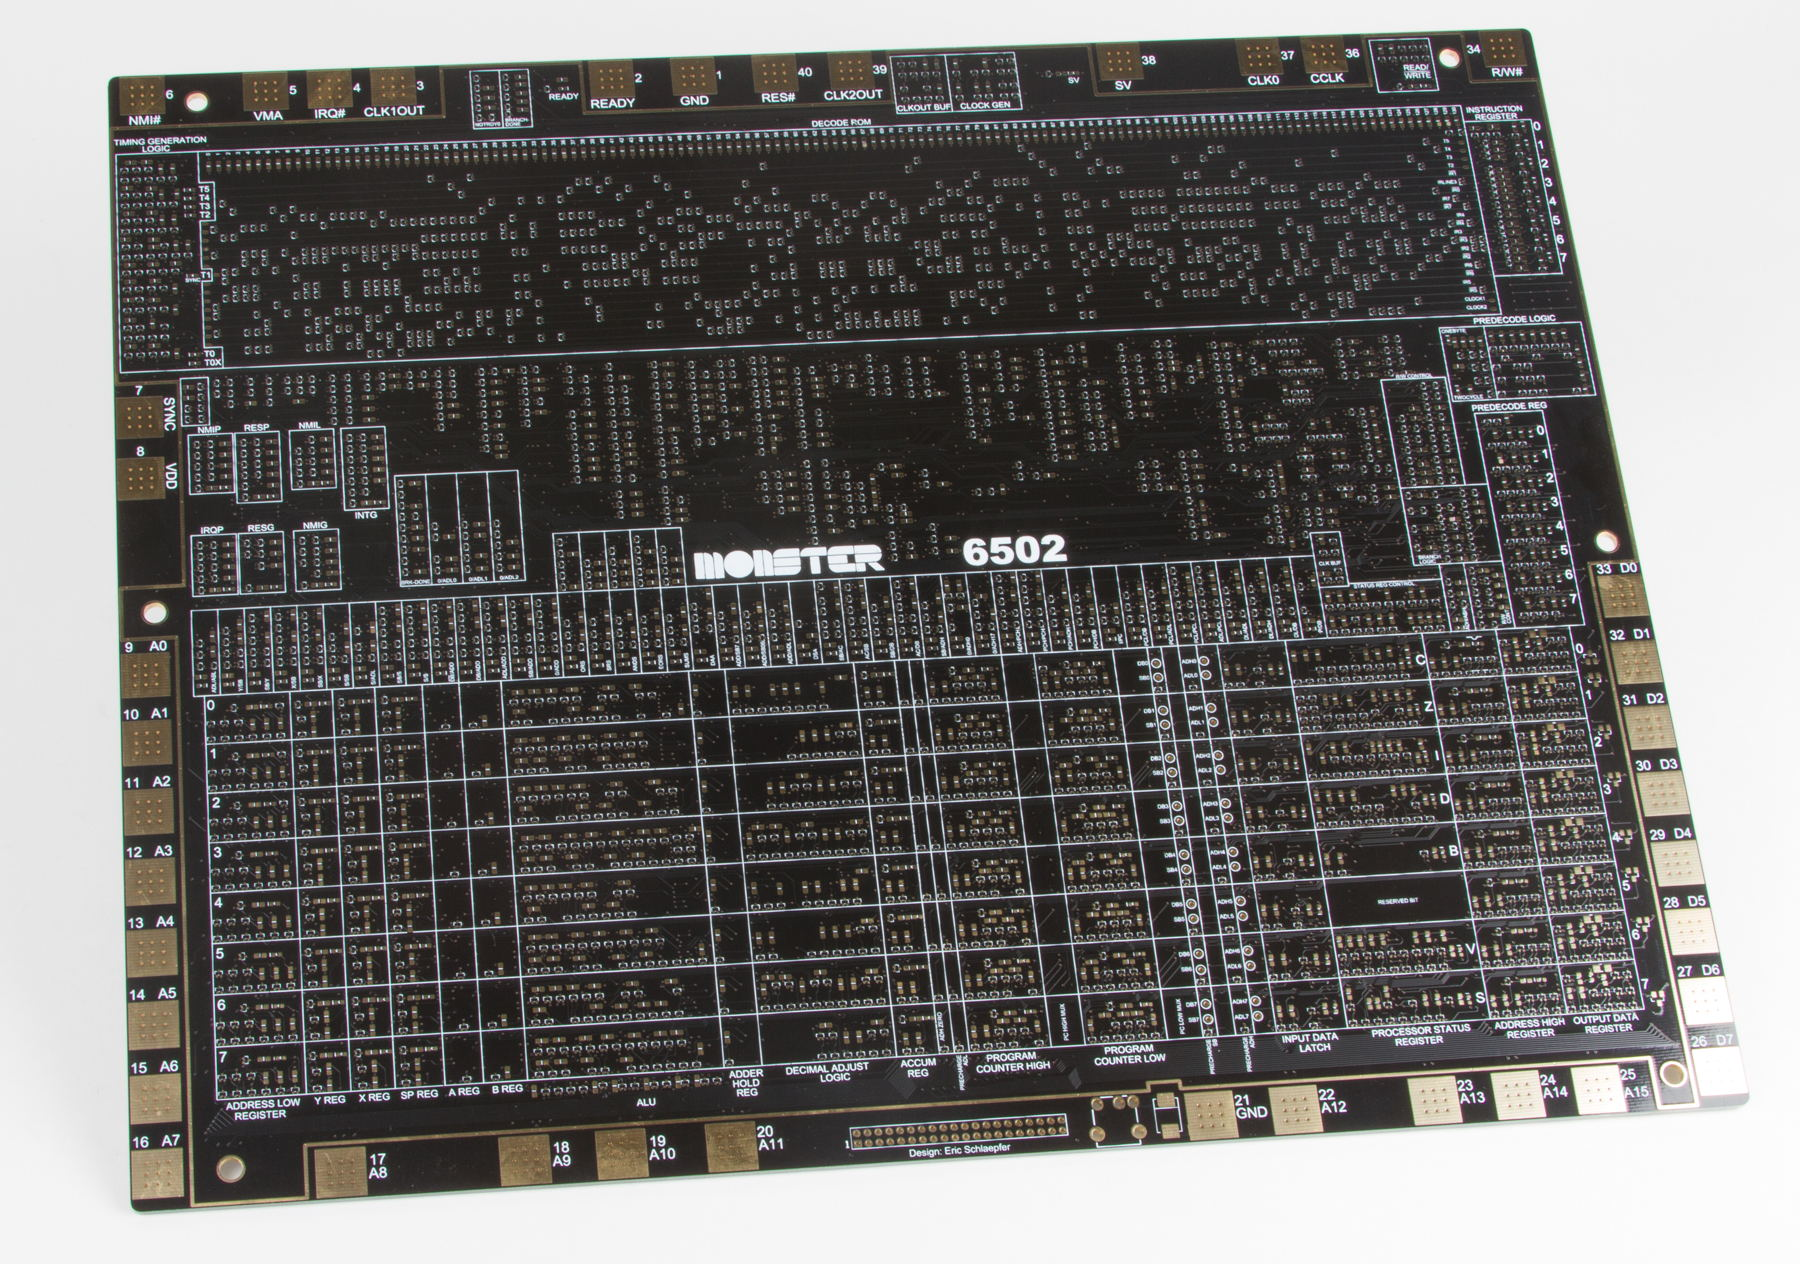 MOnSter 6502 (prototype PCB)